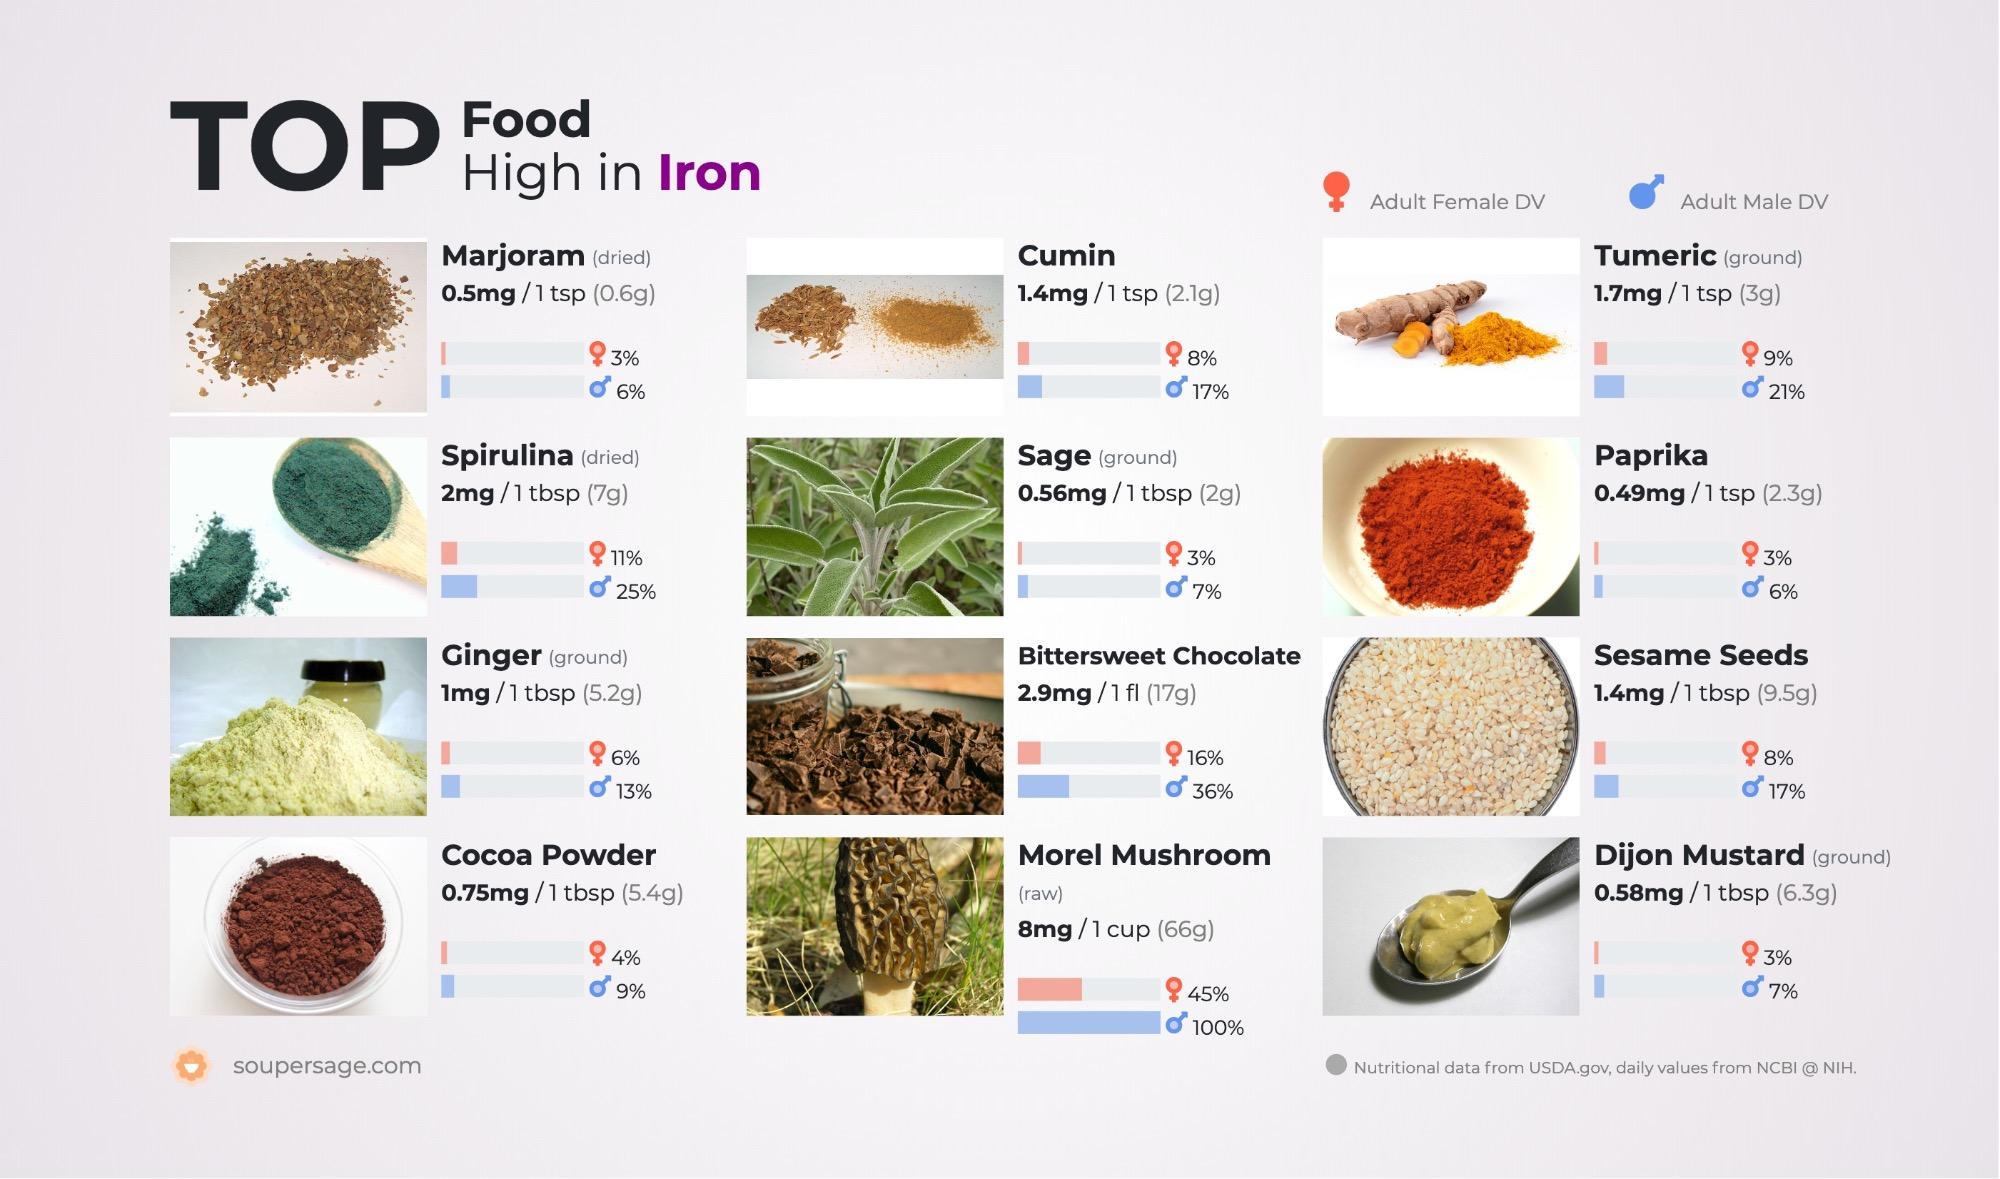 image of Top Food High in Iron